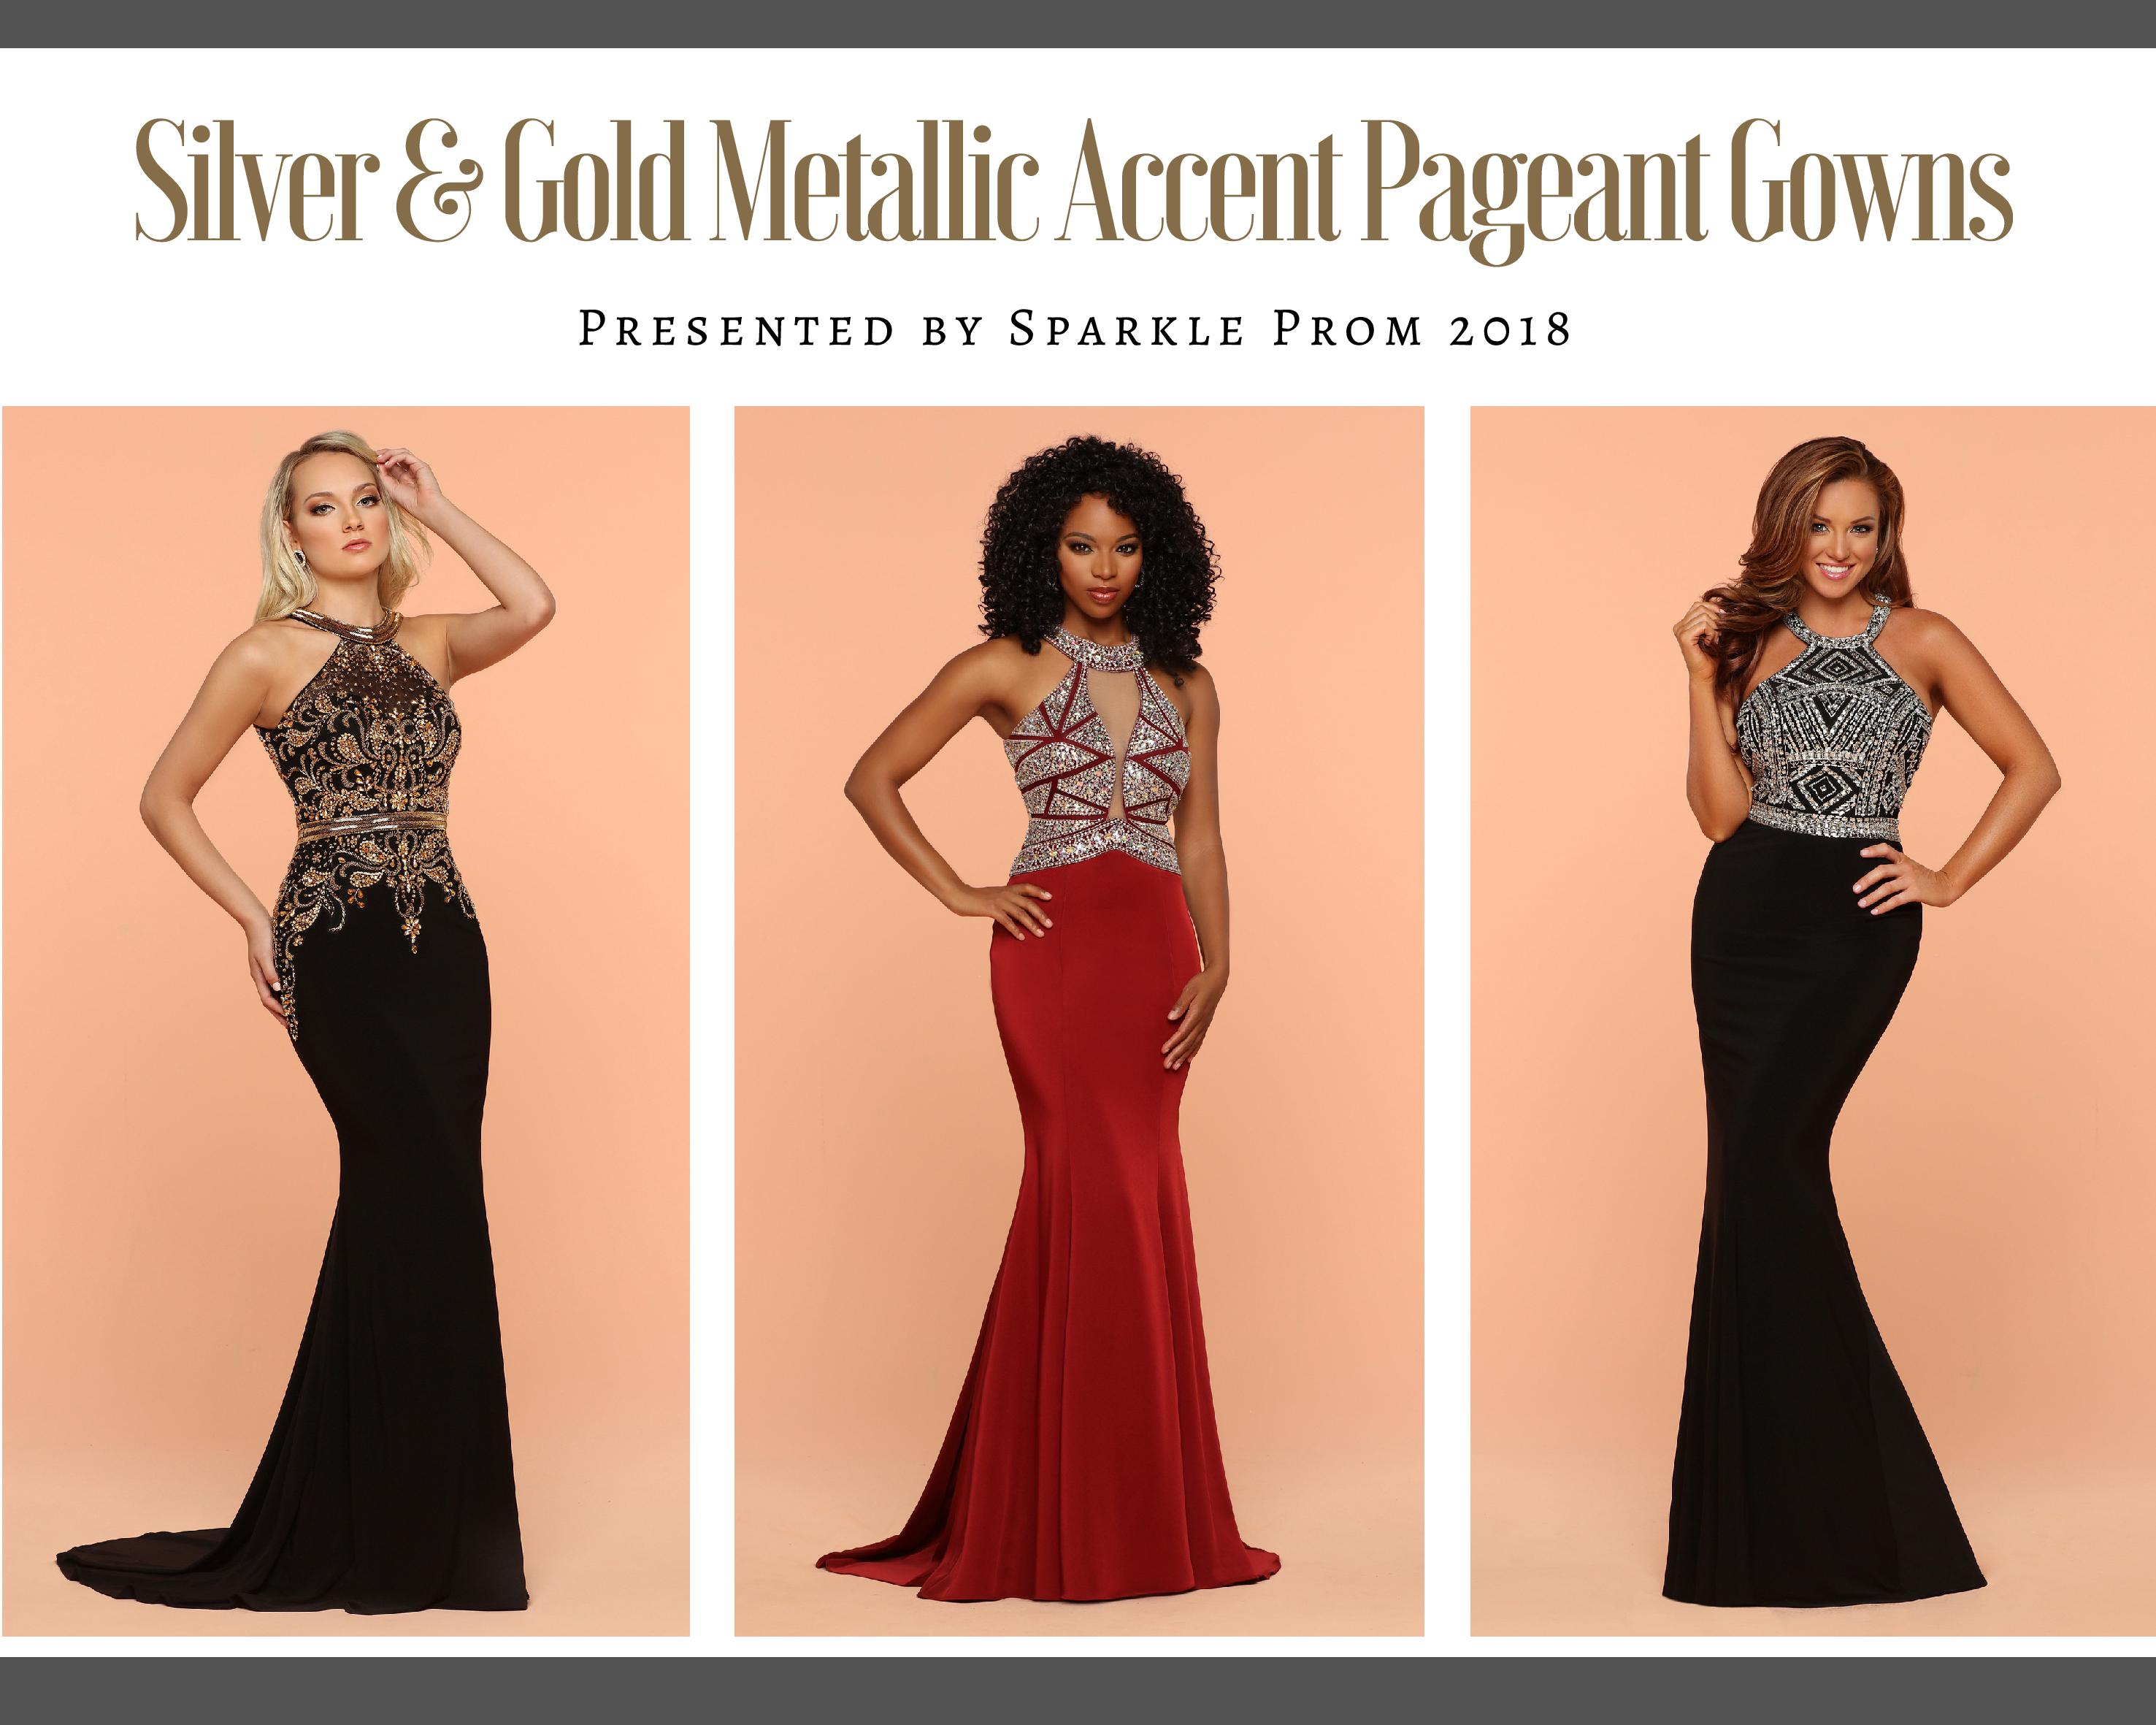 Silver & Gold Metallic Accent Pageant Gowns